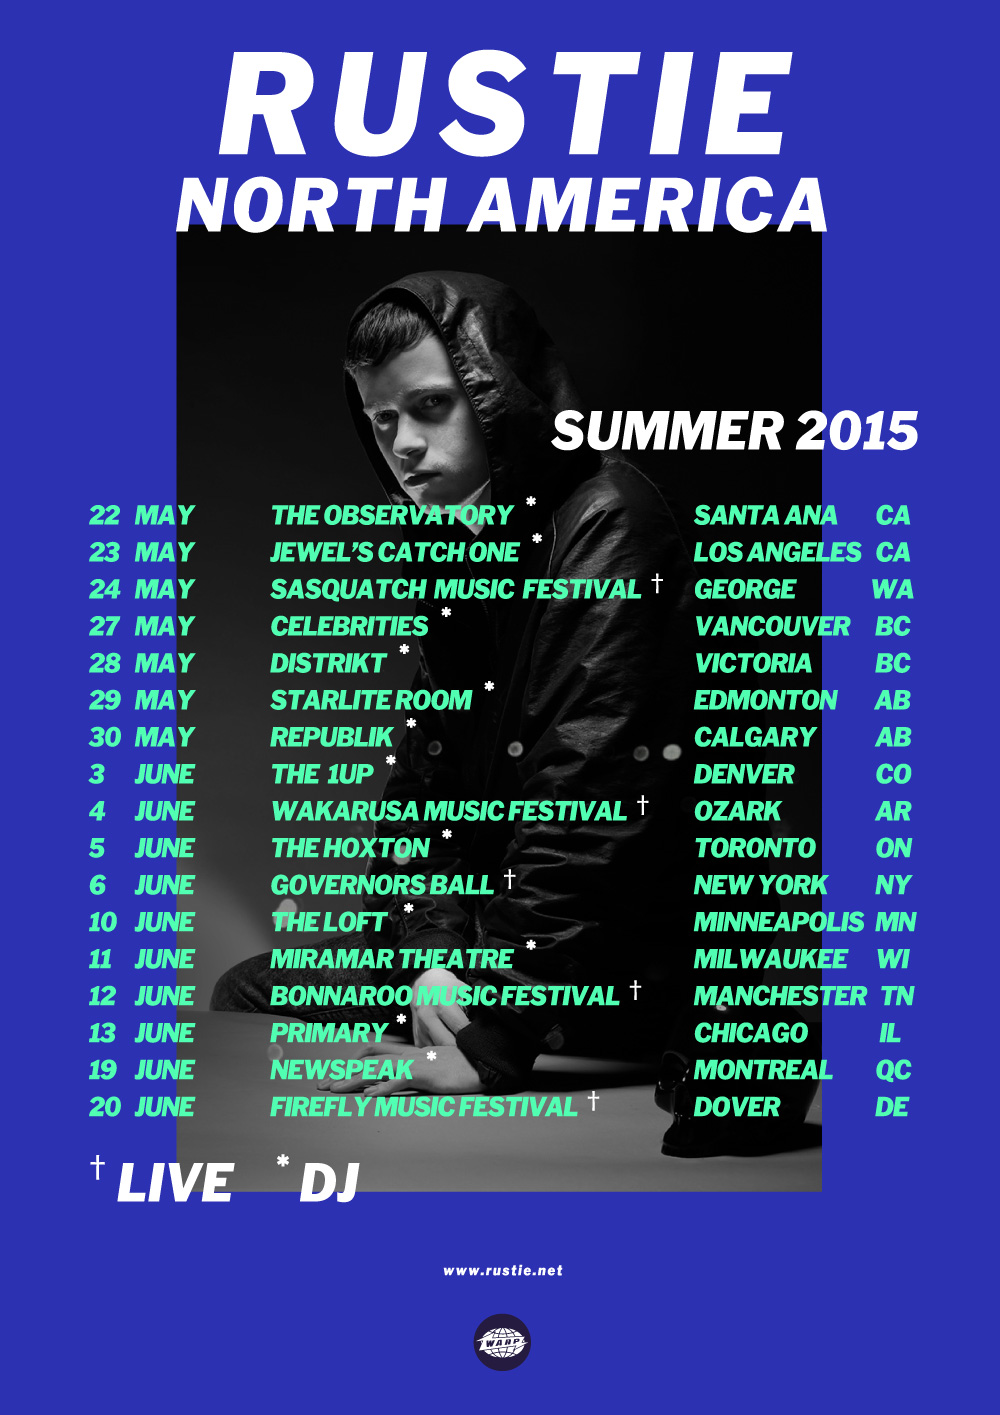 Rustie's North American Tour